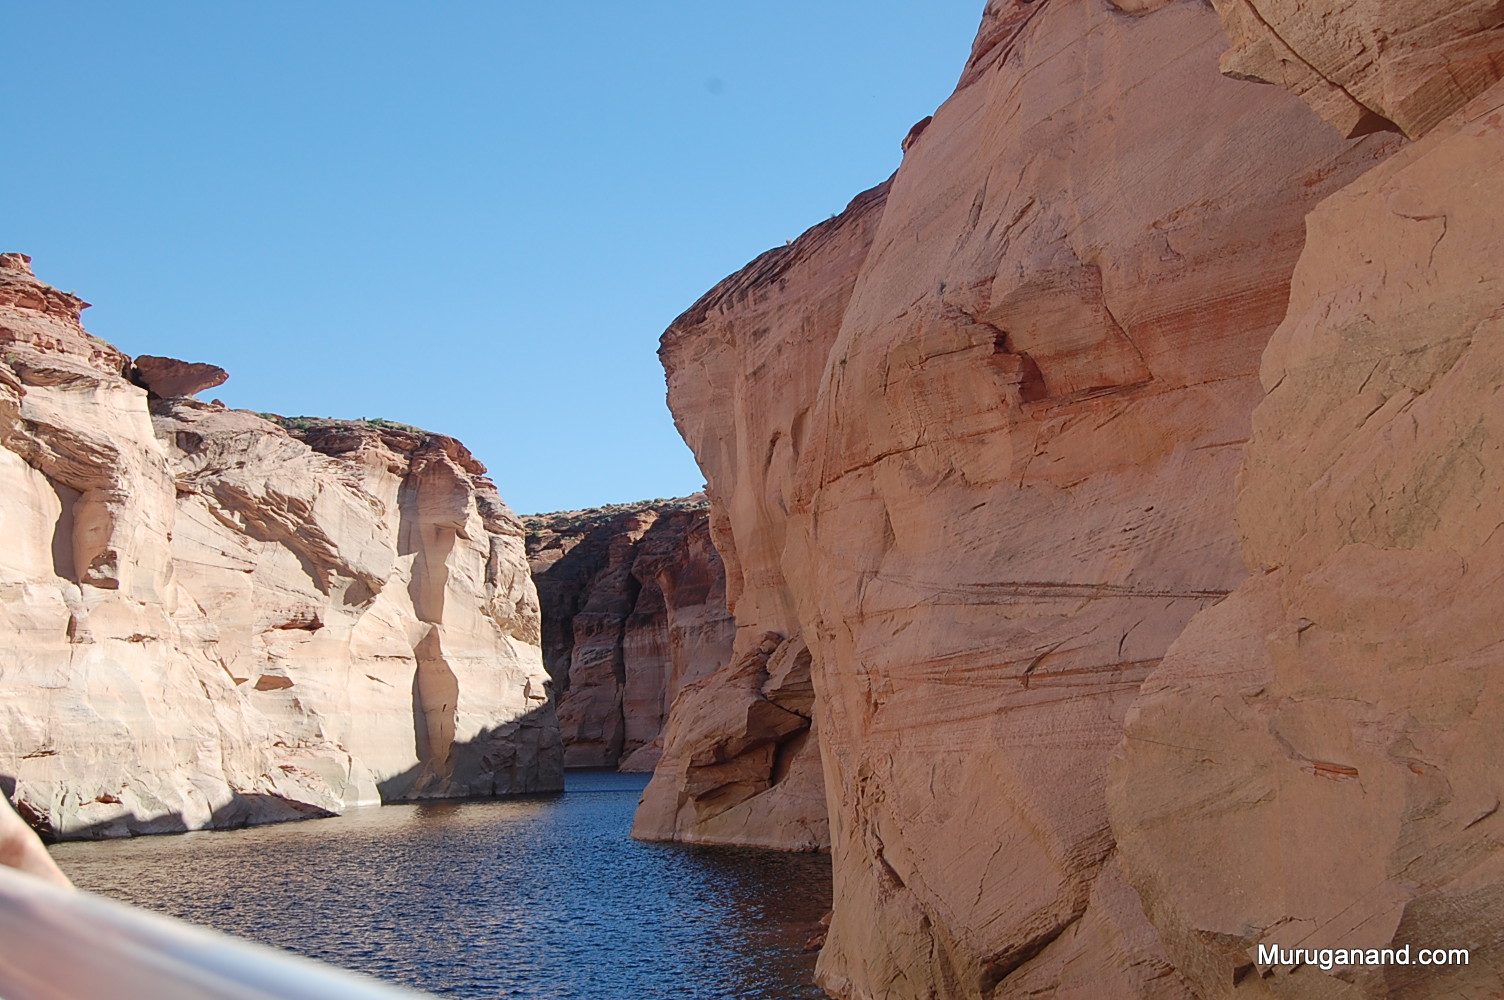 Canyon narrows and we return from this point.